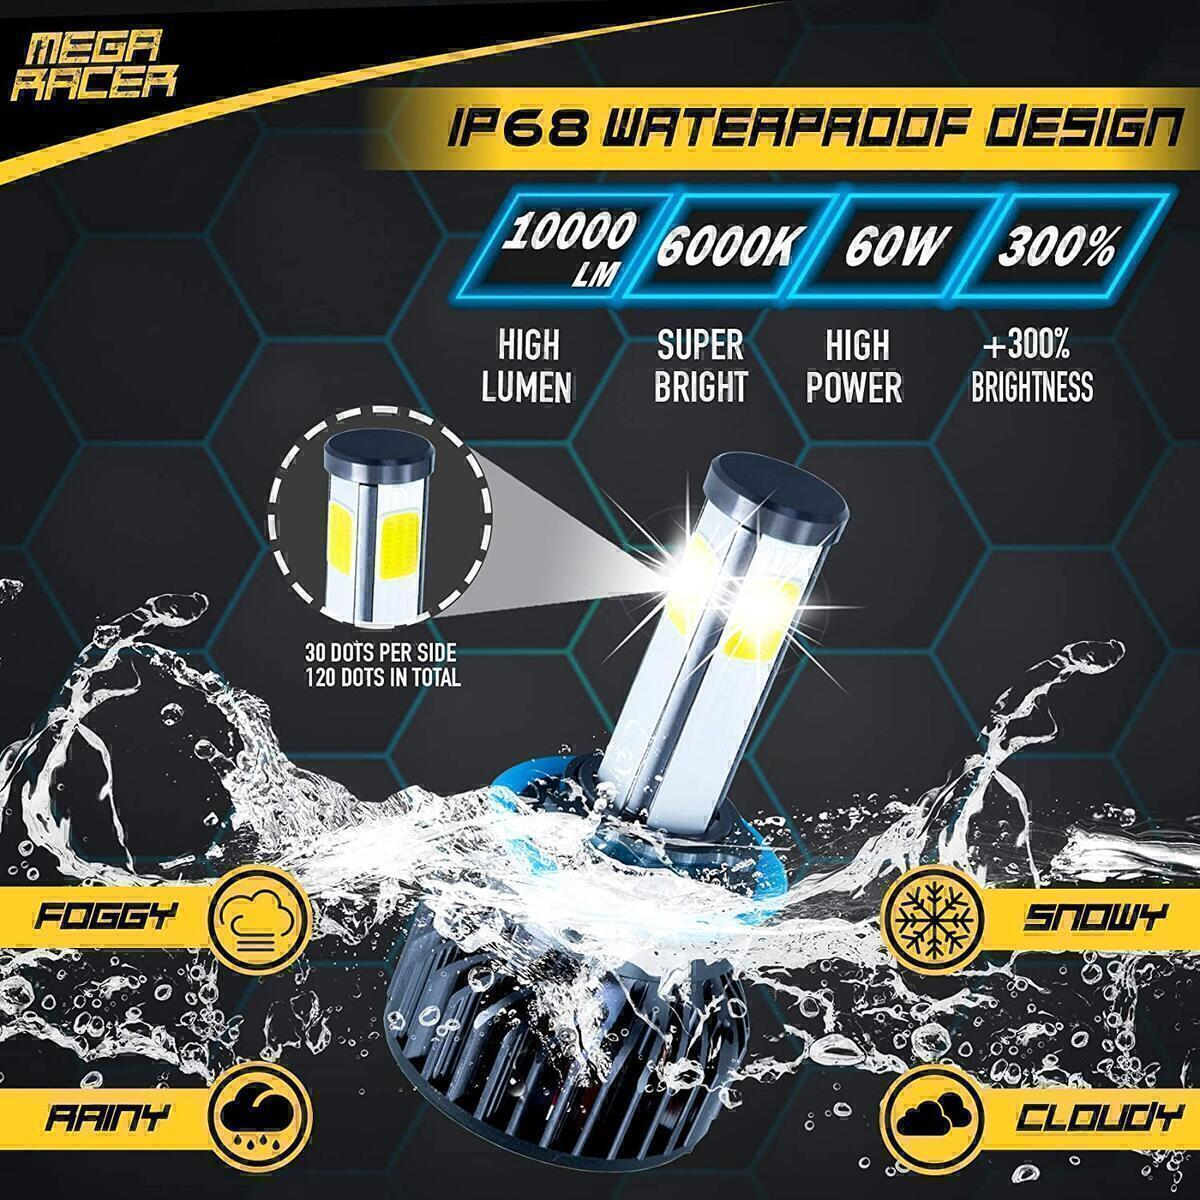 Mega Racer 4 Sided H11/H8/H9/H16 LED Headlight Bulbs for Low Beam/Fog Light/High Beam 60W 6000K 10000 Lumens Super Bright White COB IP68 Waterproof, Pack of 2